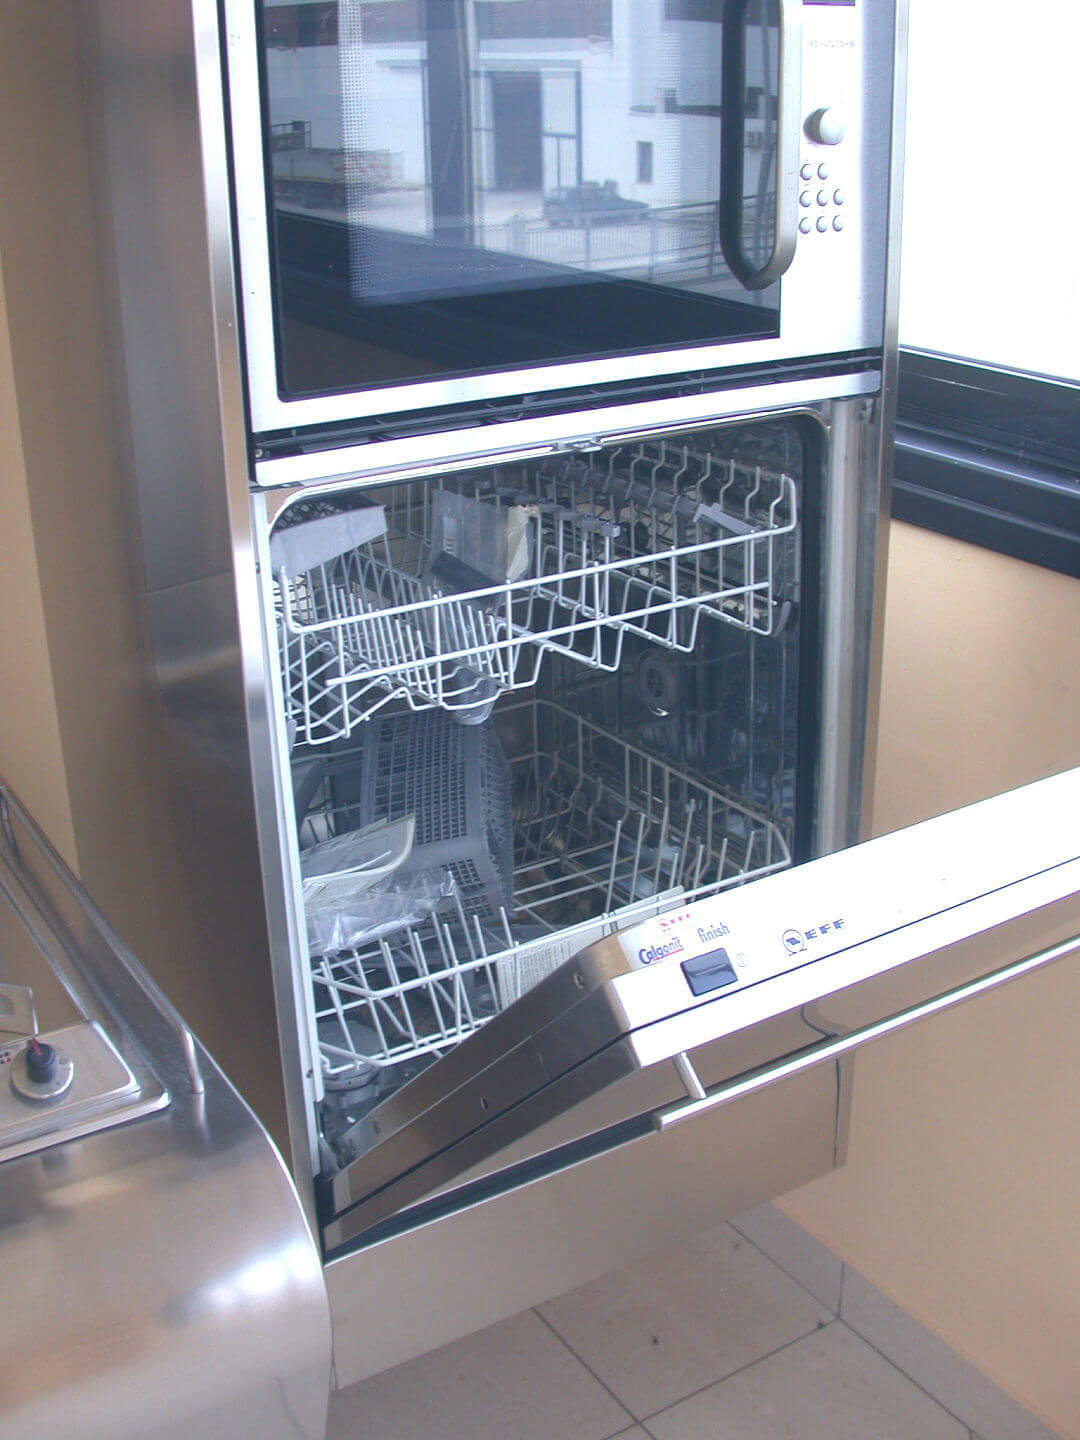 Arca Cucine Italy - Domestic stainless steel kitchens - Yacth - Dishwasher Column